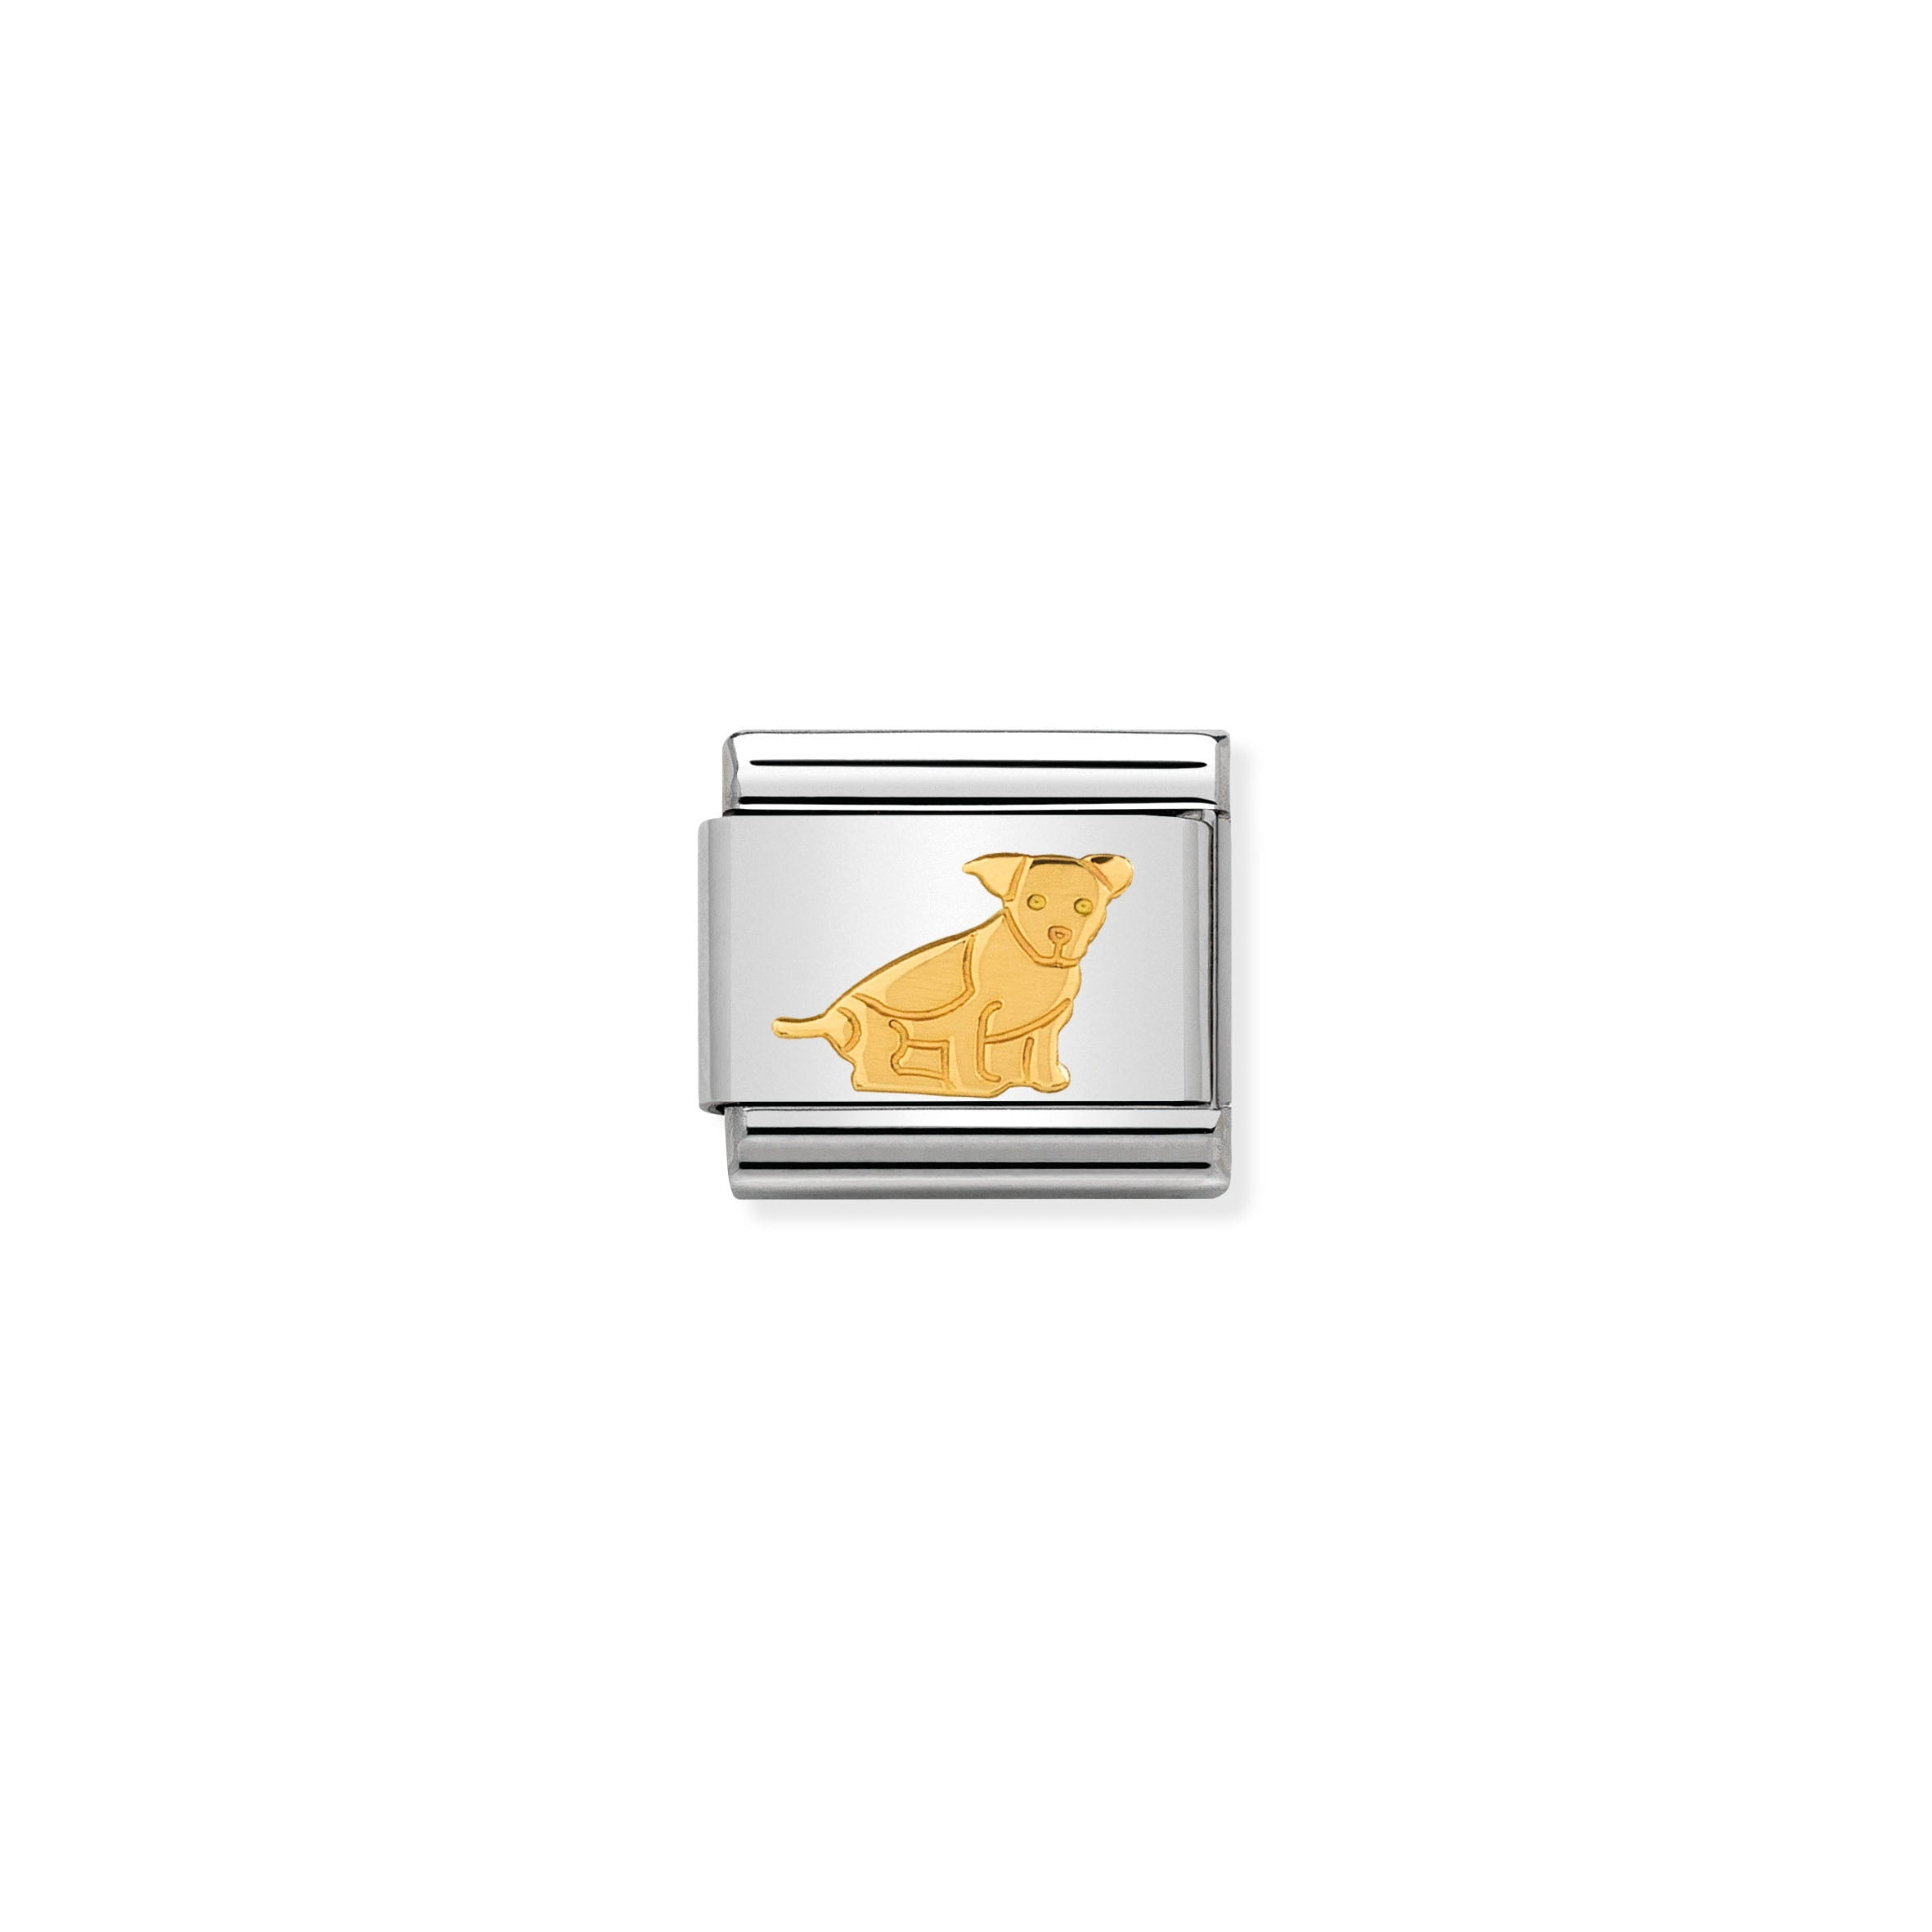 NOMINATION - Composable 030112 33 Classic ANIMALS EARTH st/steel & 18ct gold (Seated dog)